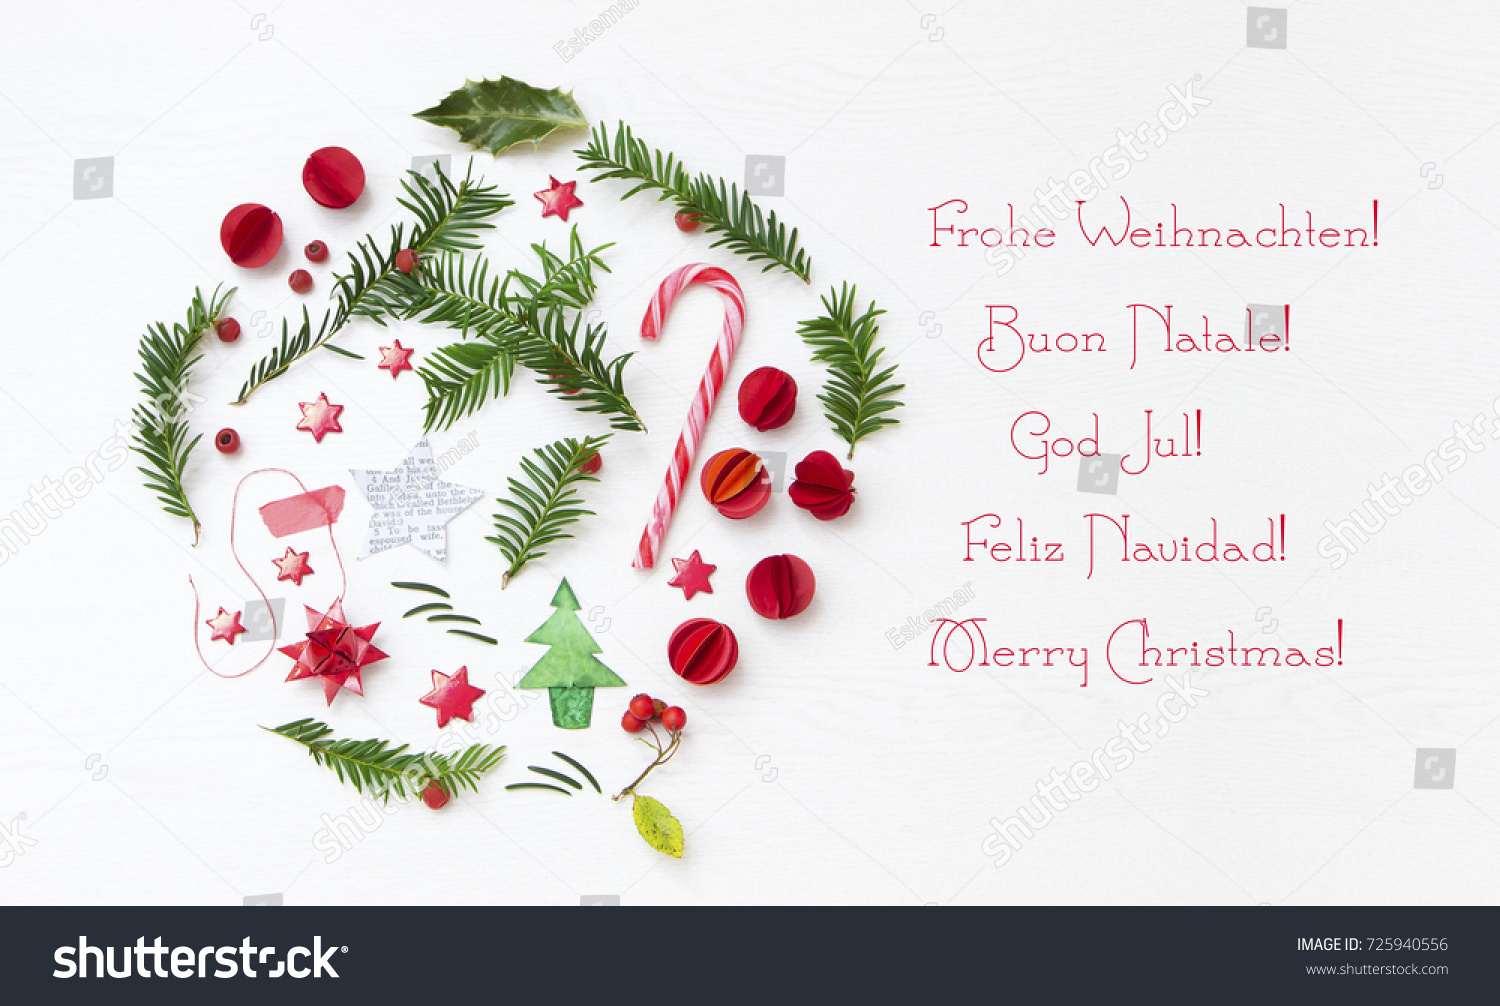 Merry Christmas Greetings International Stock Photo (Edit Now ...